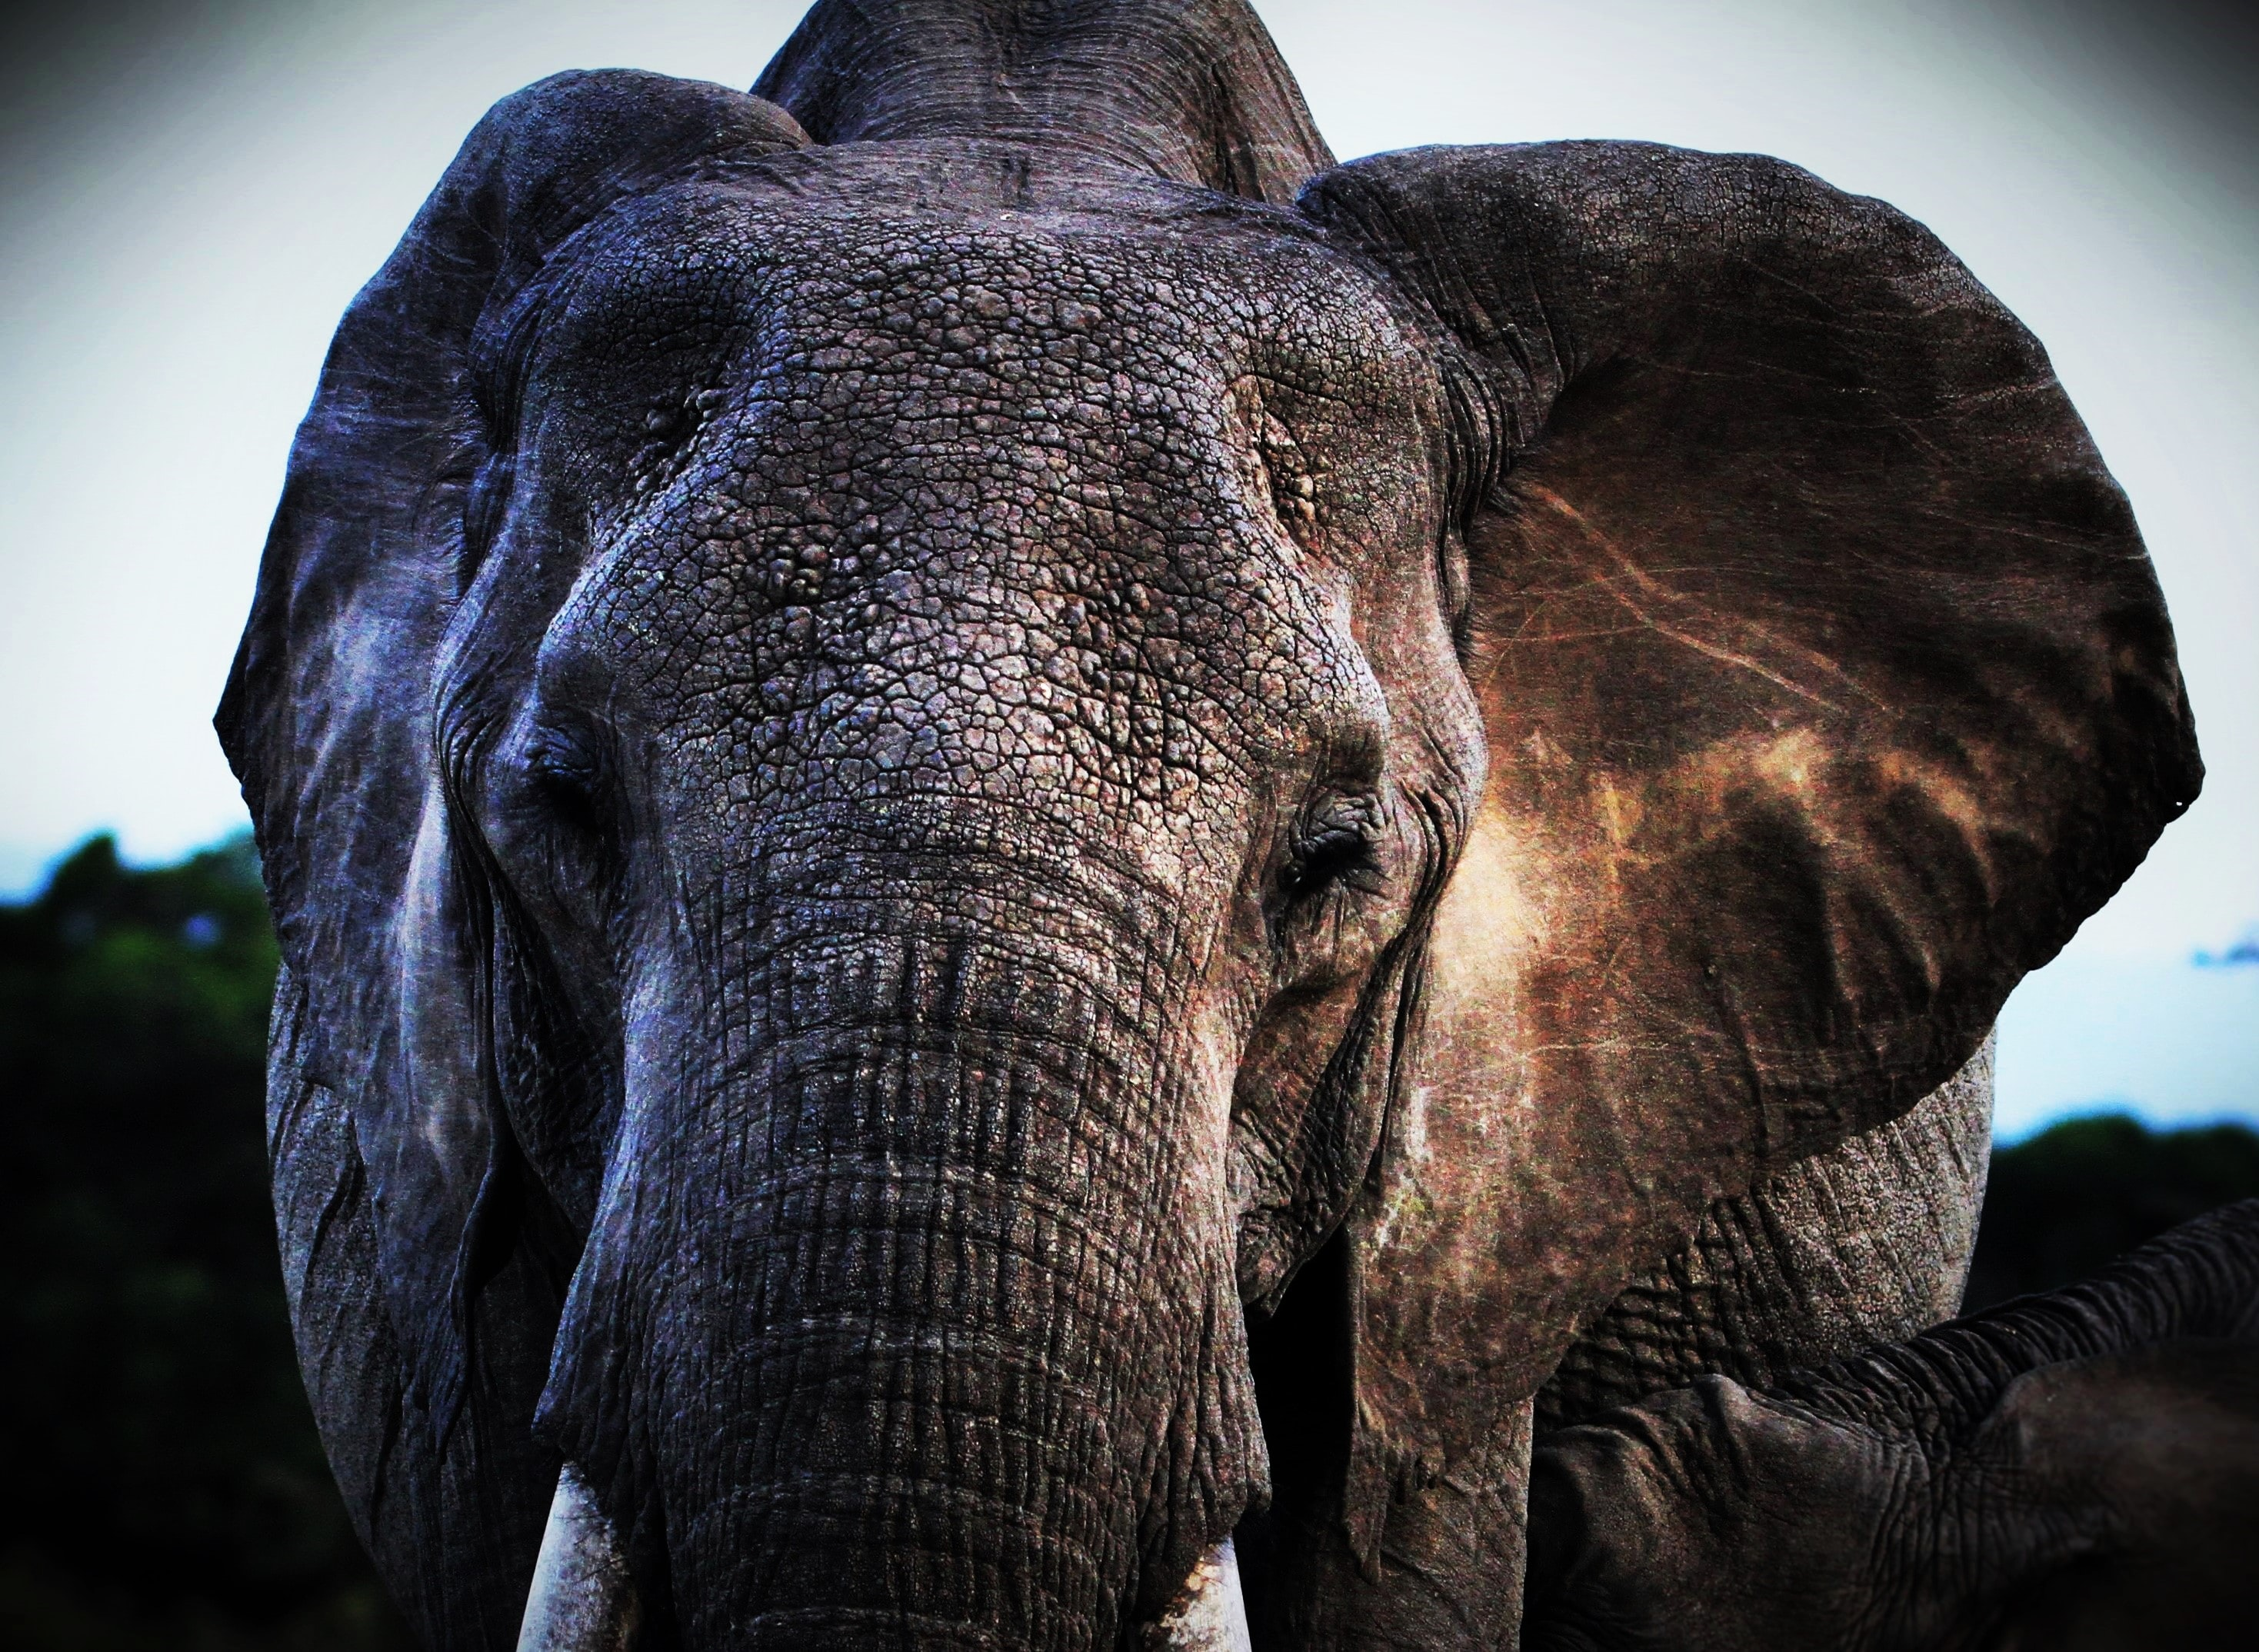 close up photo of brown elephant's face